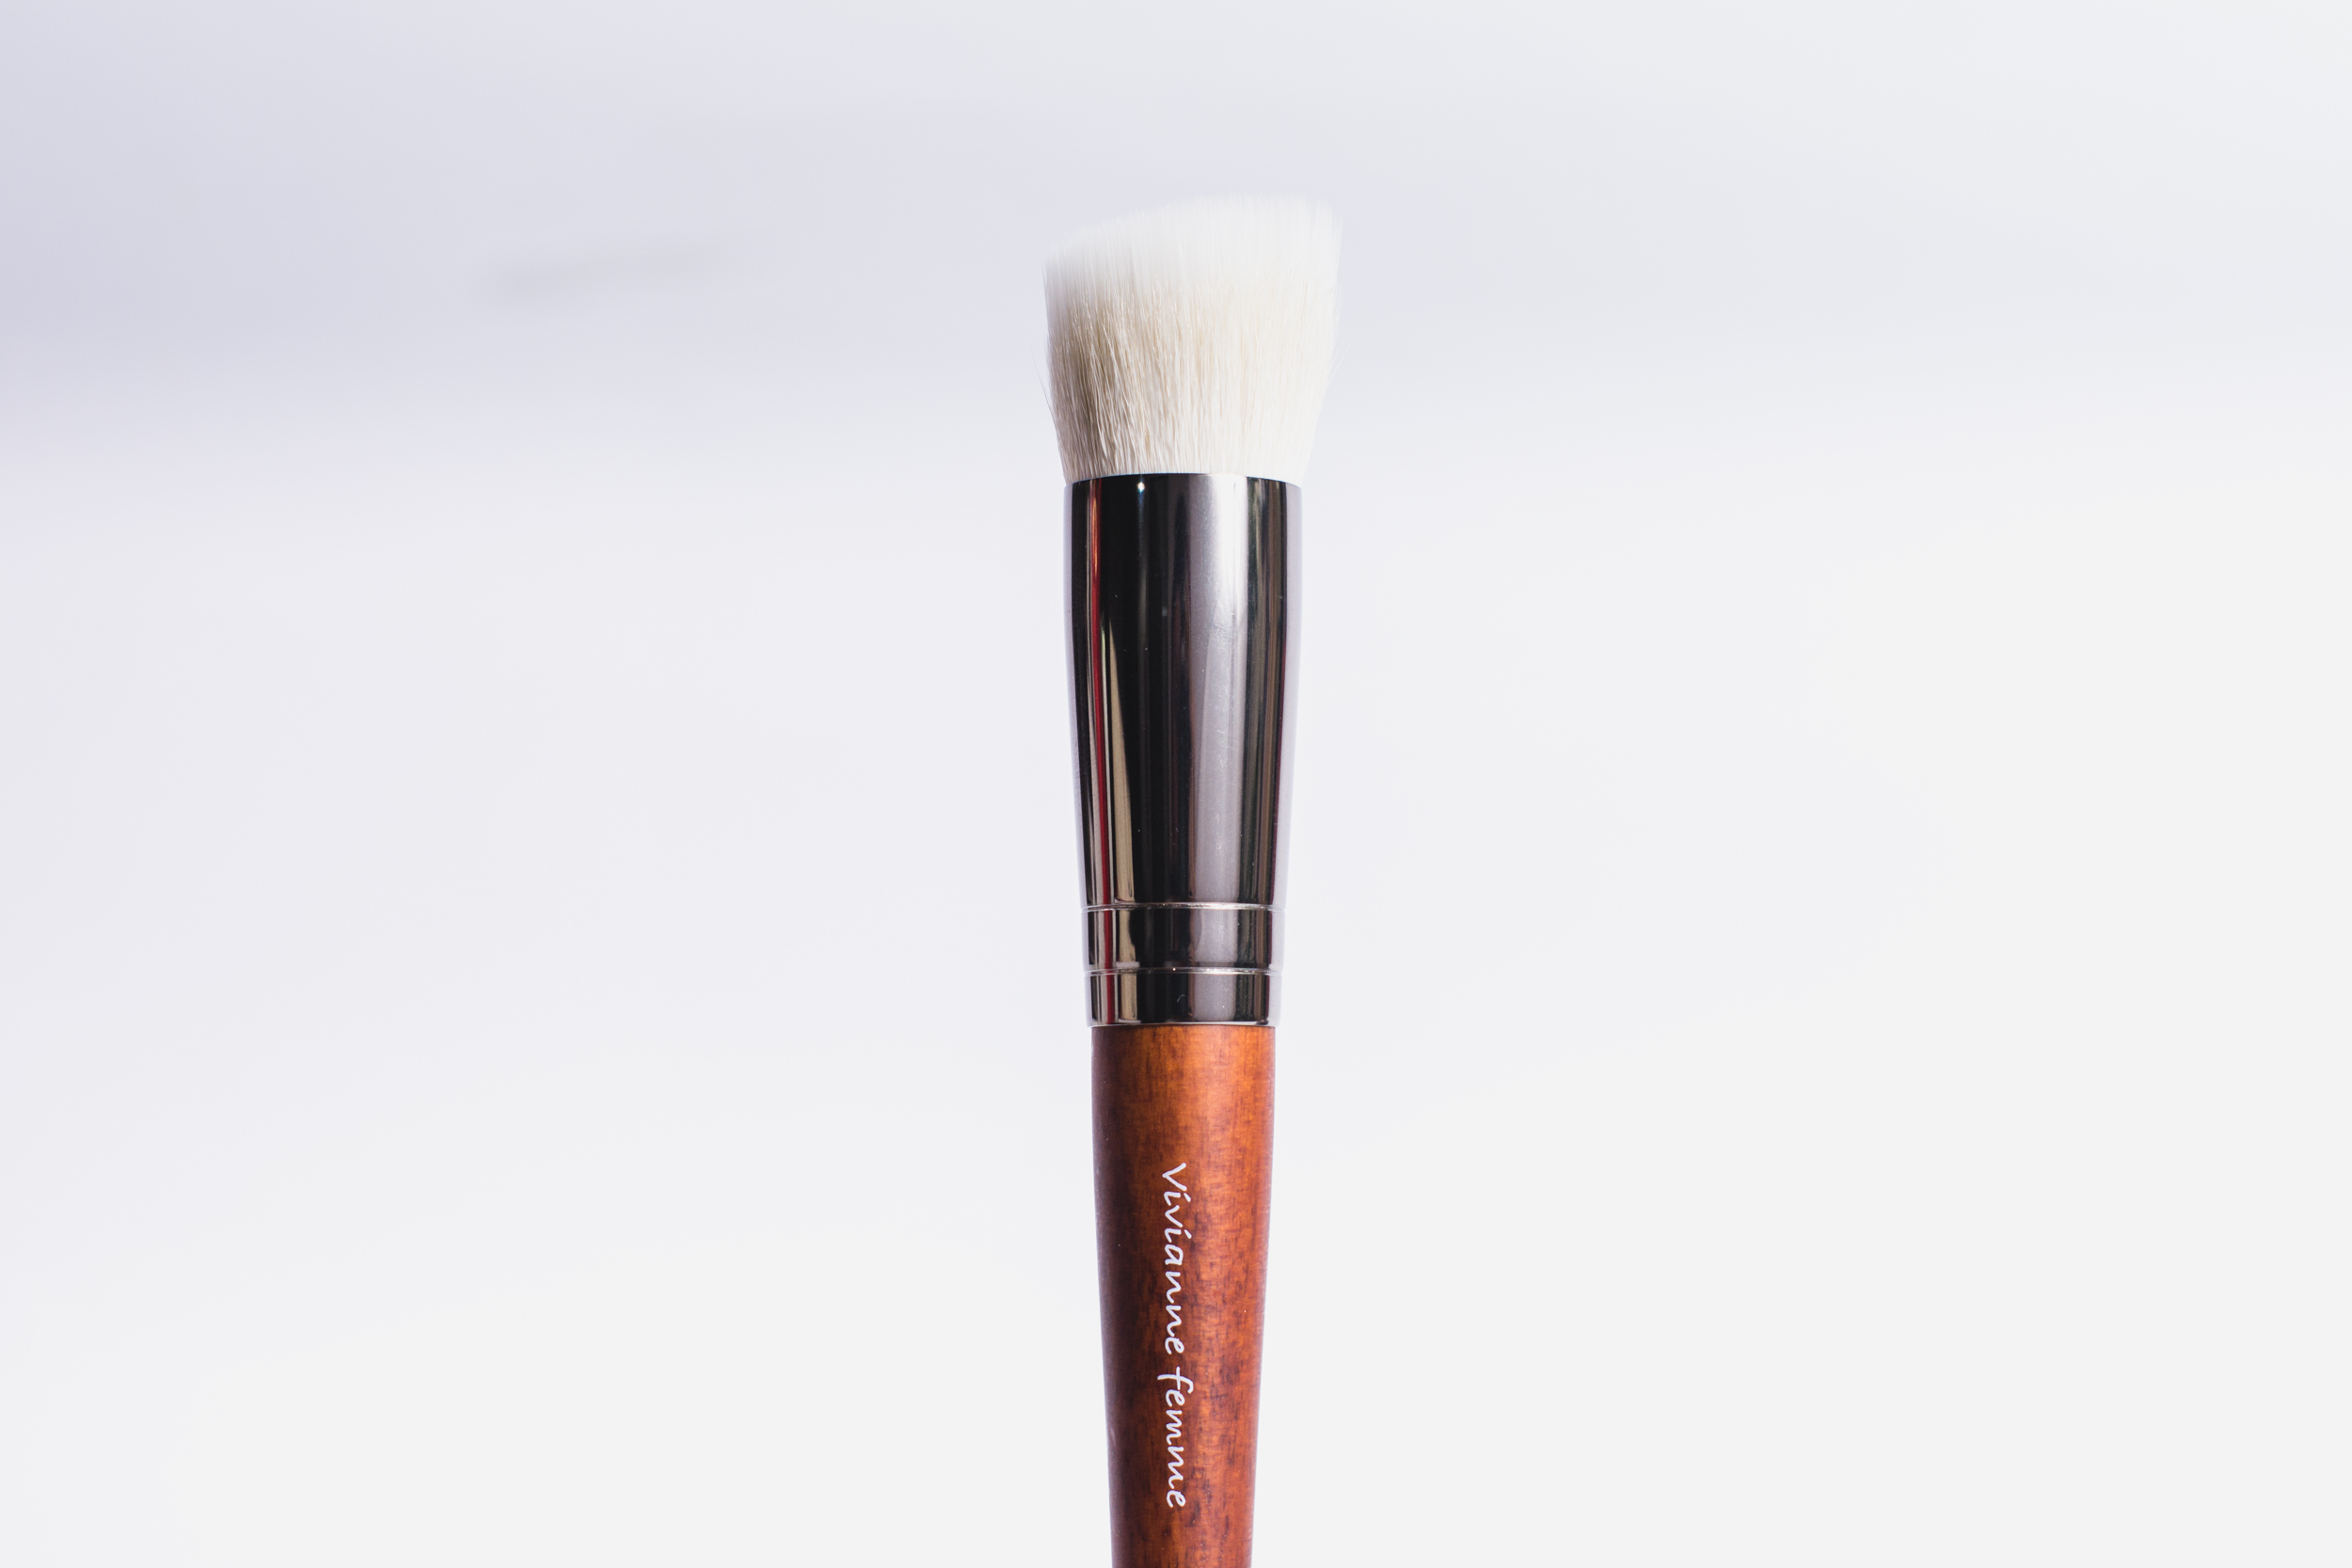 Vivianne Femme Ultra Blending Face Brush (P1,145)